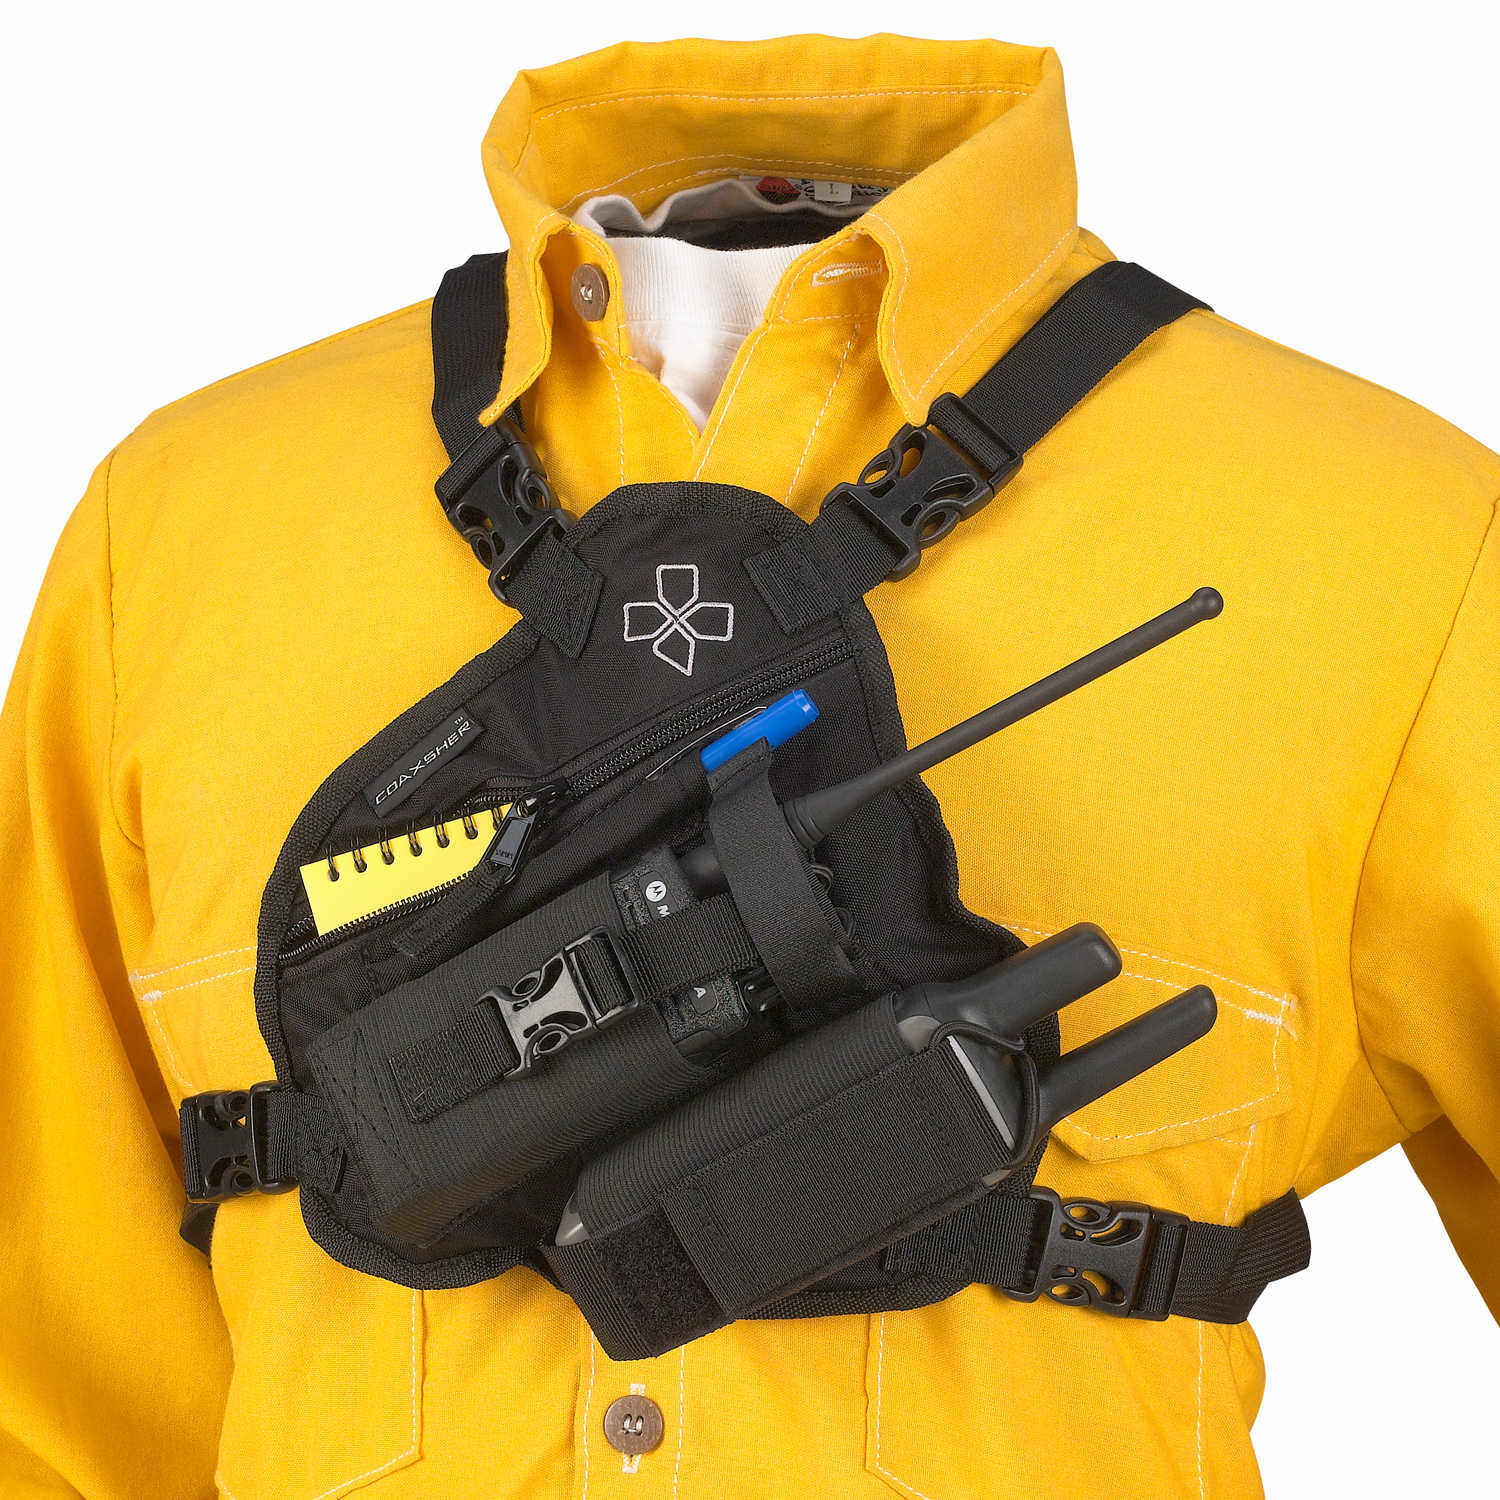 coaxsher rp 1 scout radio chest harness 40232062391 ebay TPS Sensor Harness coaxsher rp 1 scout radio chest harness